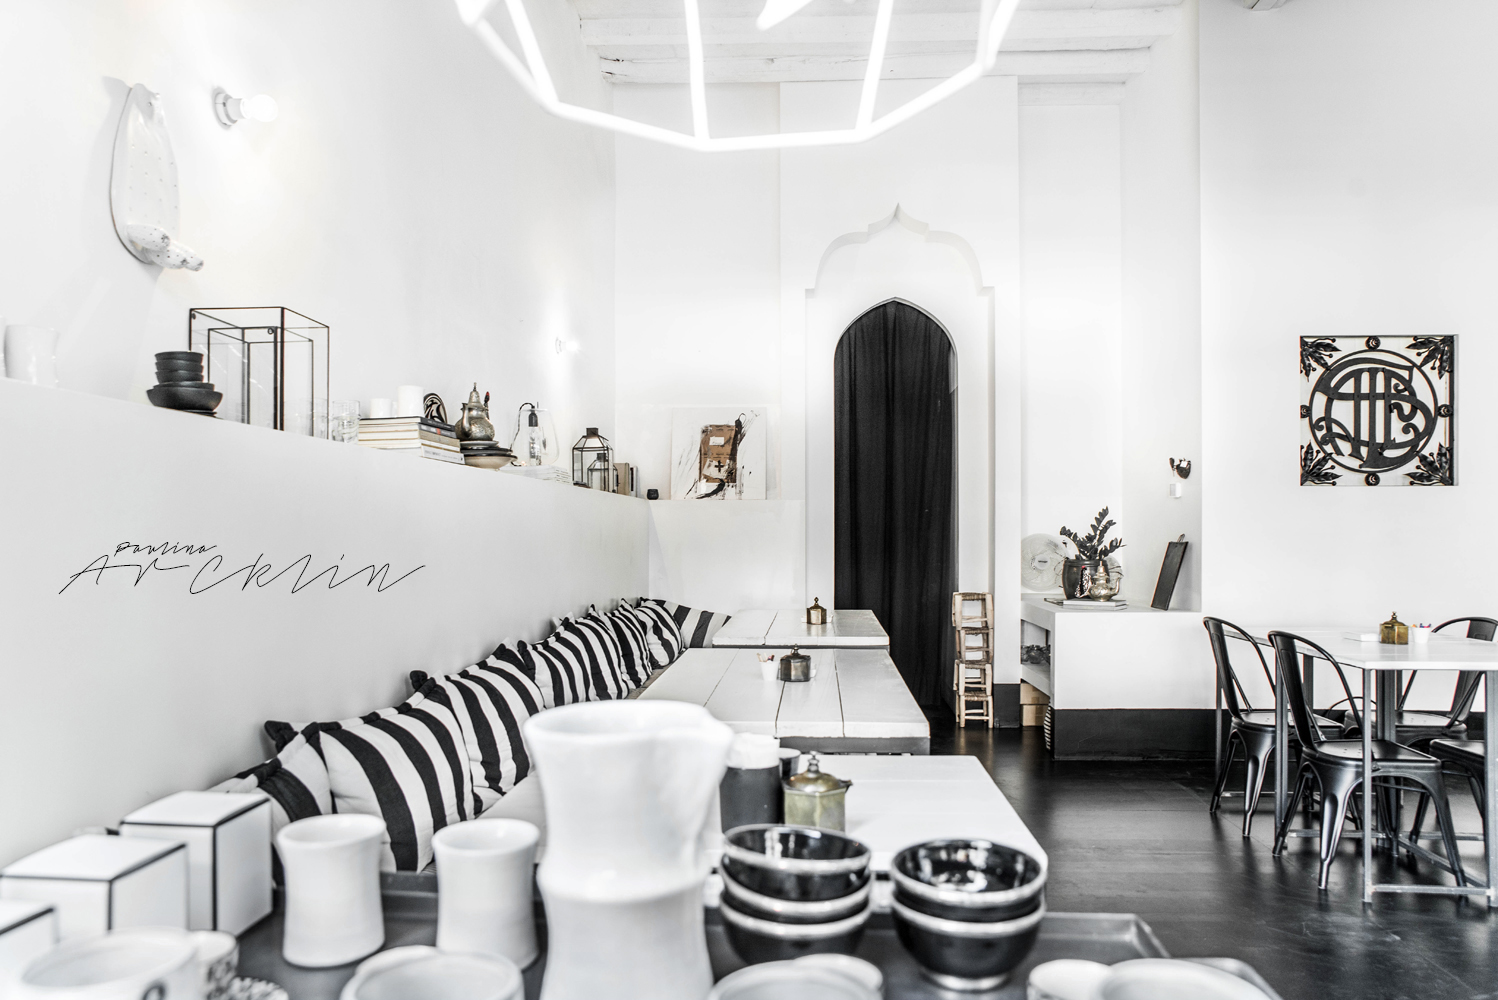 design restaurant in milan, italian interiors, italian interior design, italian design restaurant, paulina arcklin, riad food garden , black white restaurant design, ethnic chic, ethnic scandinavian, scandi boho, scandinavian style restaurant, tine k home, black white decor, black white striped cushions, black flooring